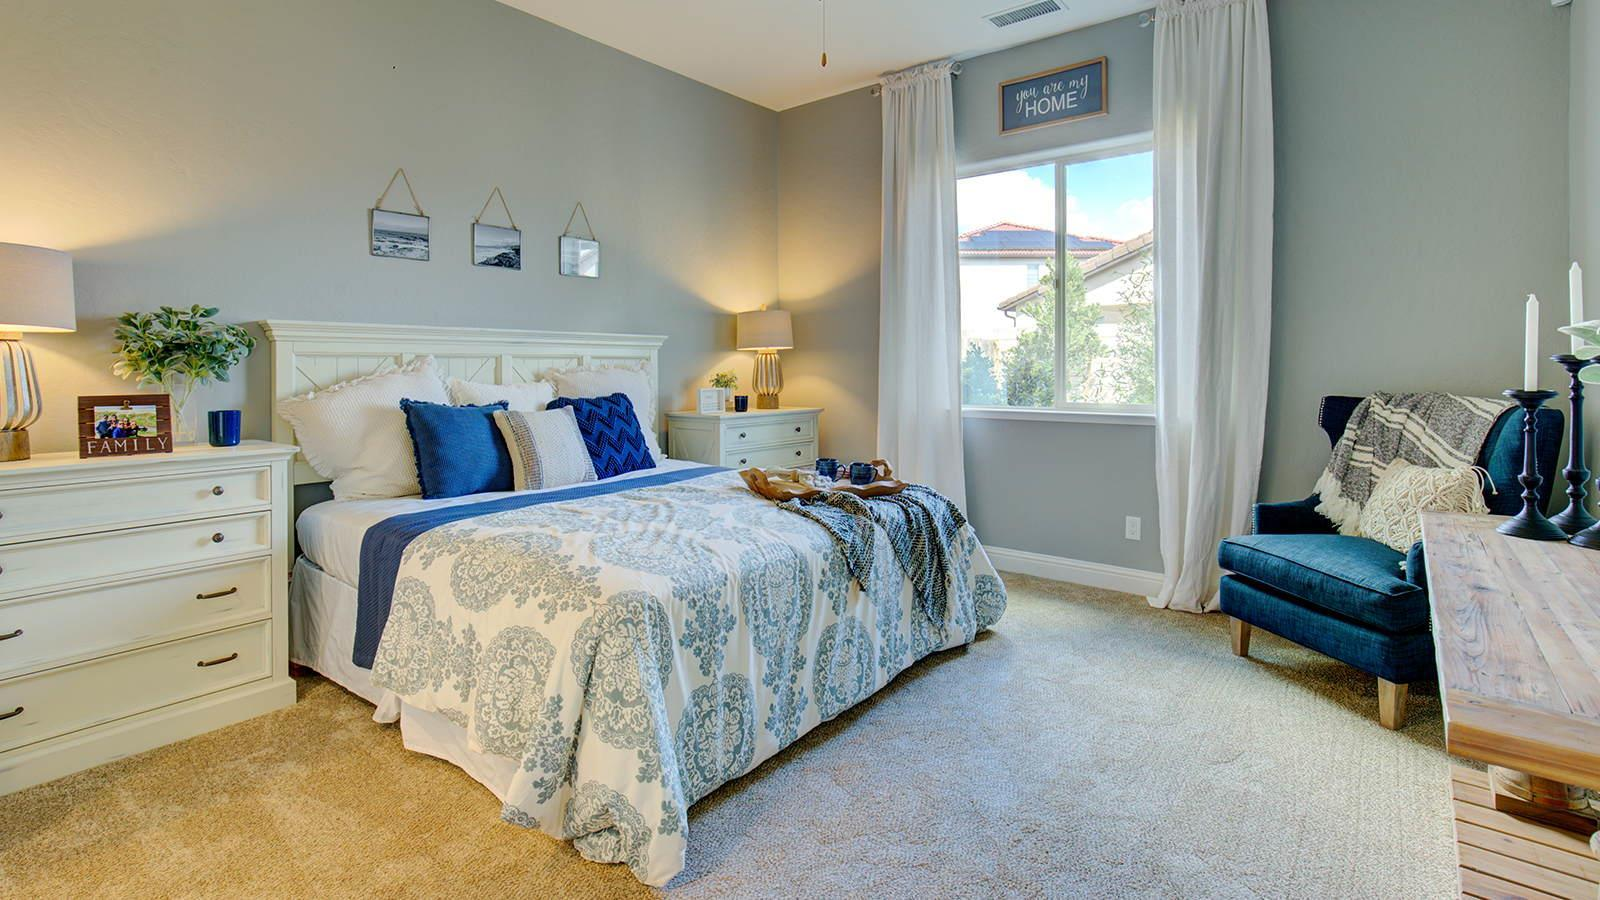 Bedroom featured in the Pasatiempo By Granville Homes  in Fresno, CA